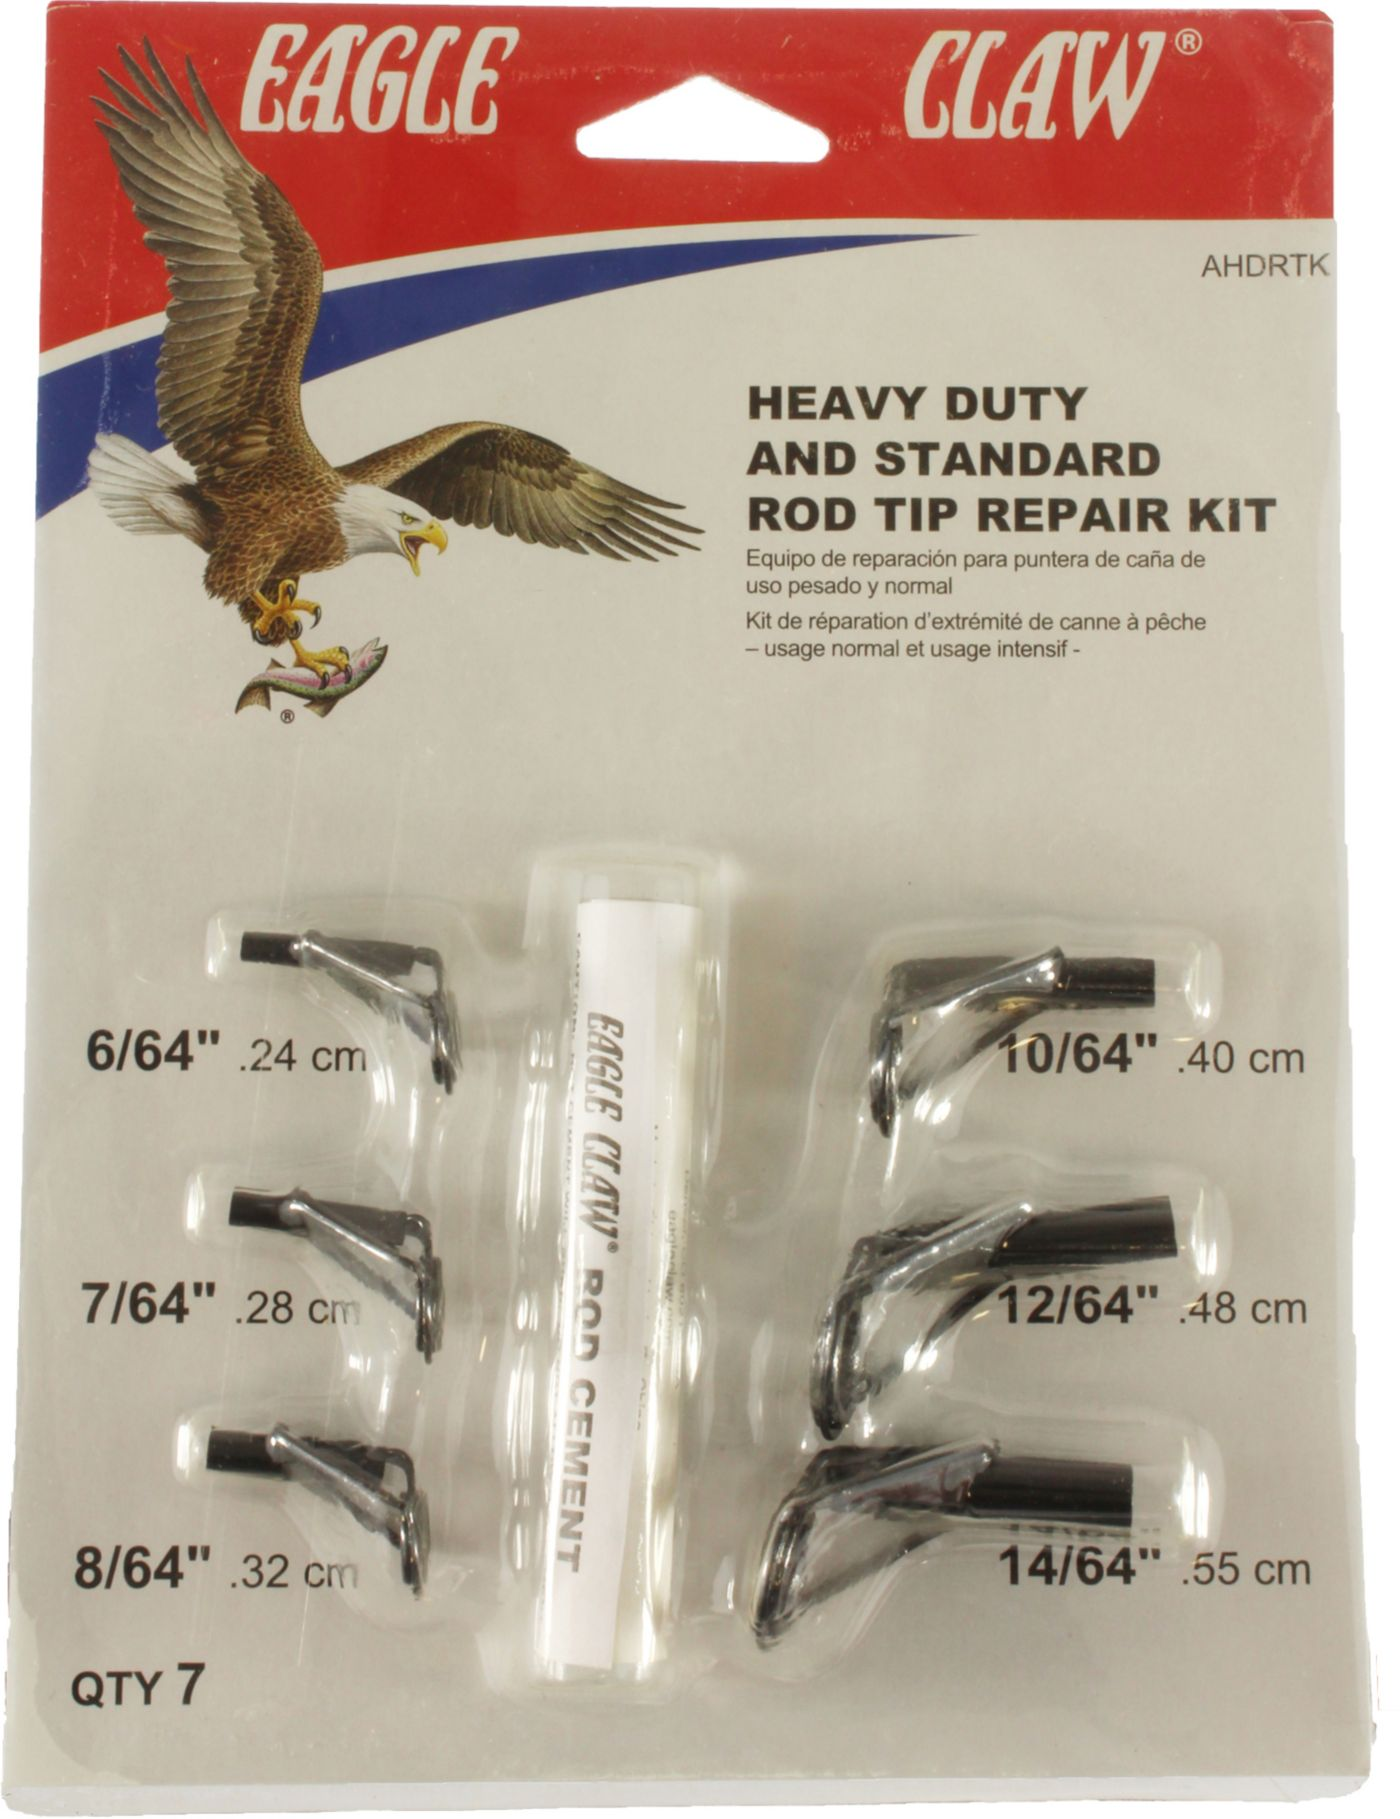 Eagle Claw Heavy Duty and Standard Rod Tip Repair Kit